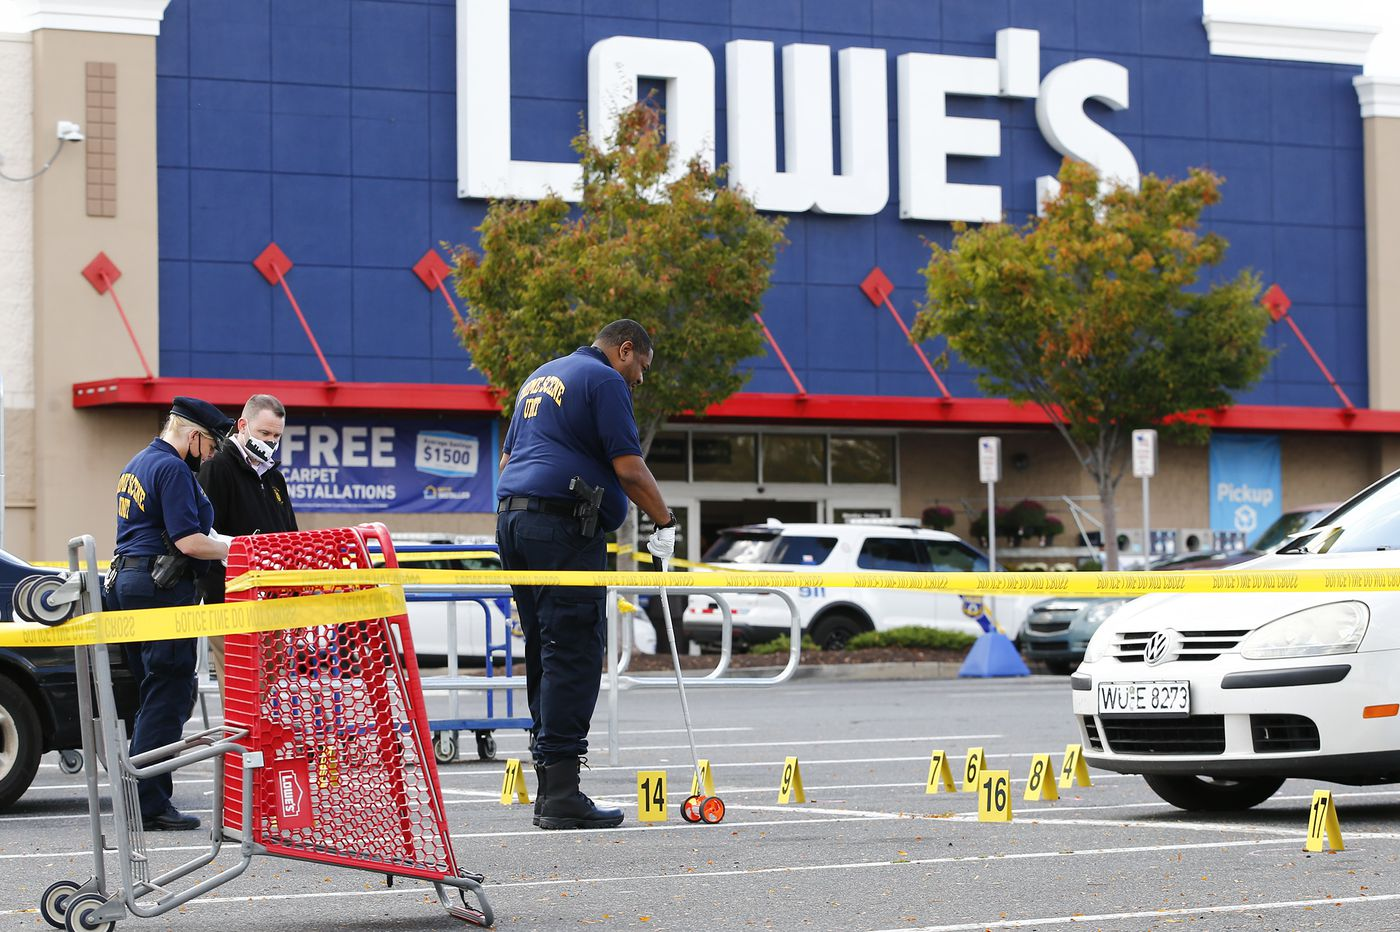 Man killed in shooting in South Philly Lowe's parking lot